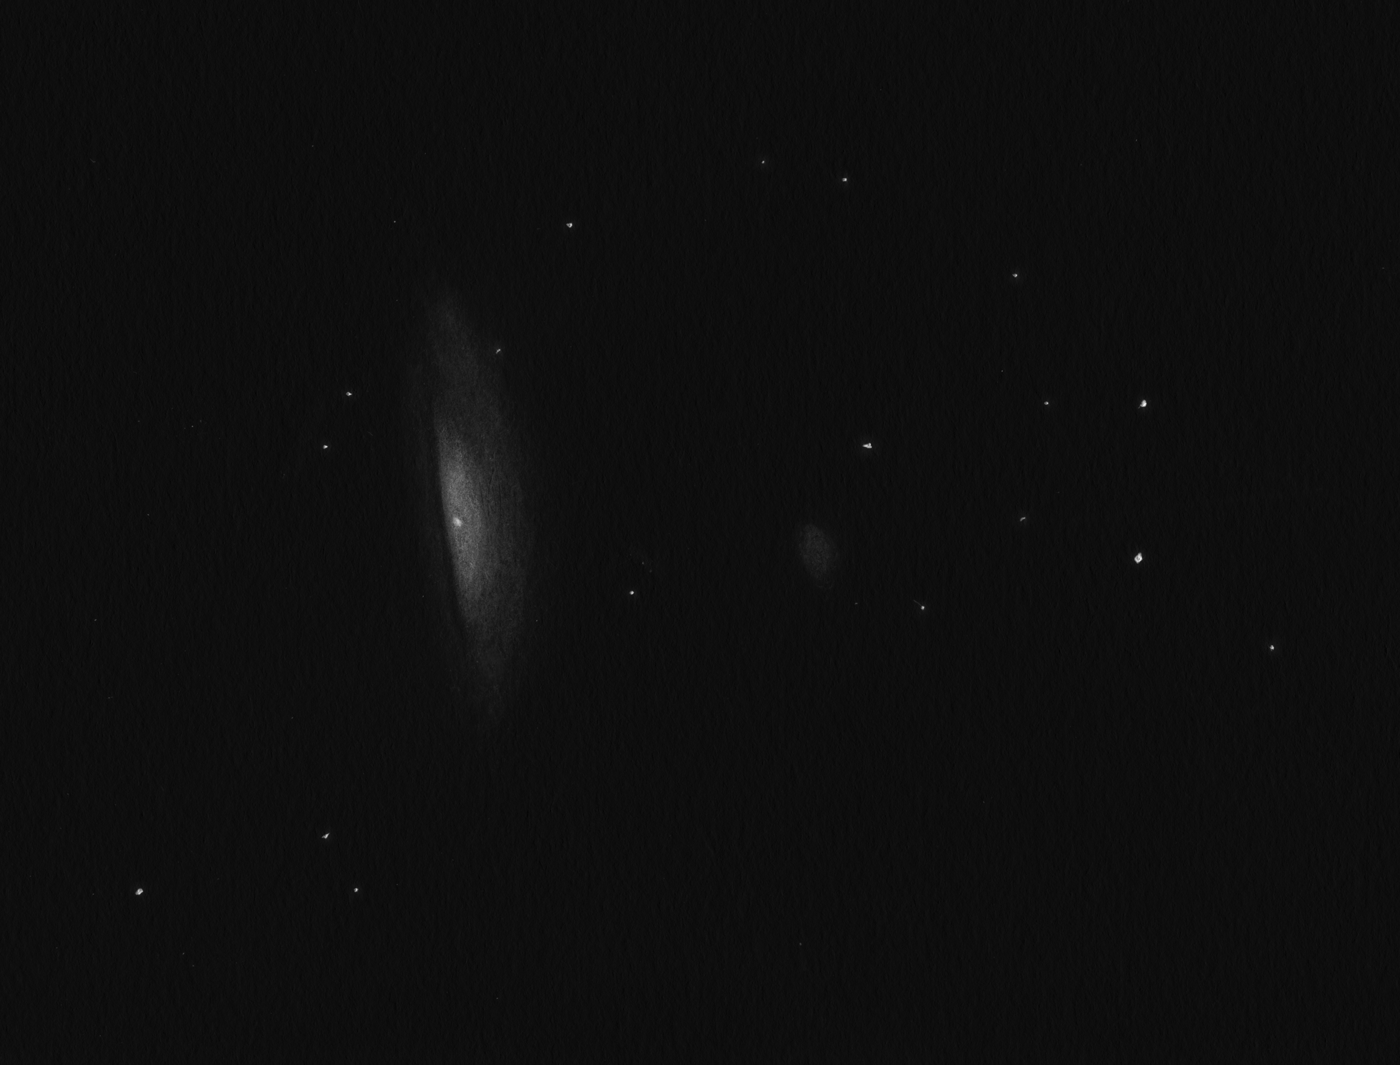 NGC_7331_2020-09-08_21-00_T400x166x218_gbe_small.png.dac559272573a1775aa7b3180edef792.png